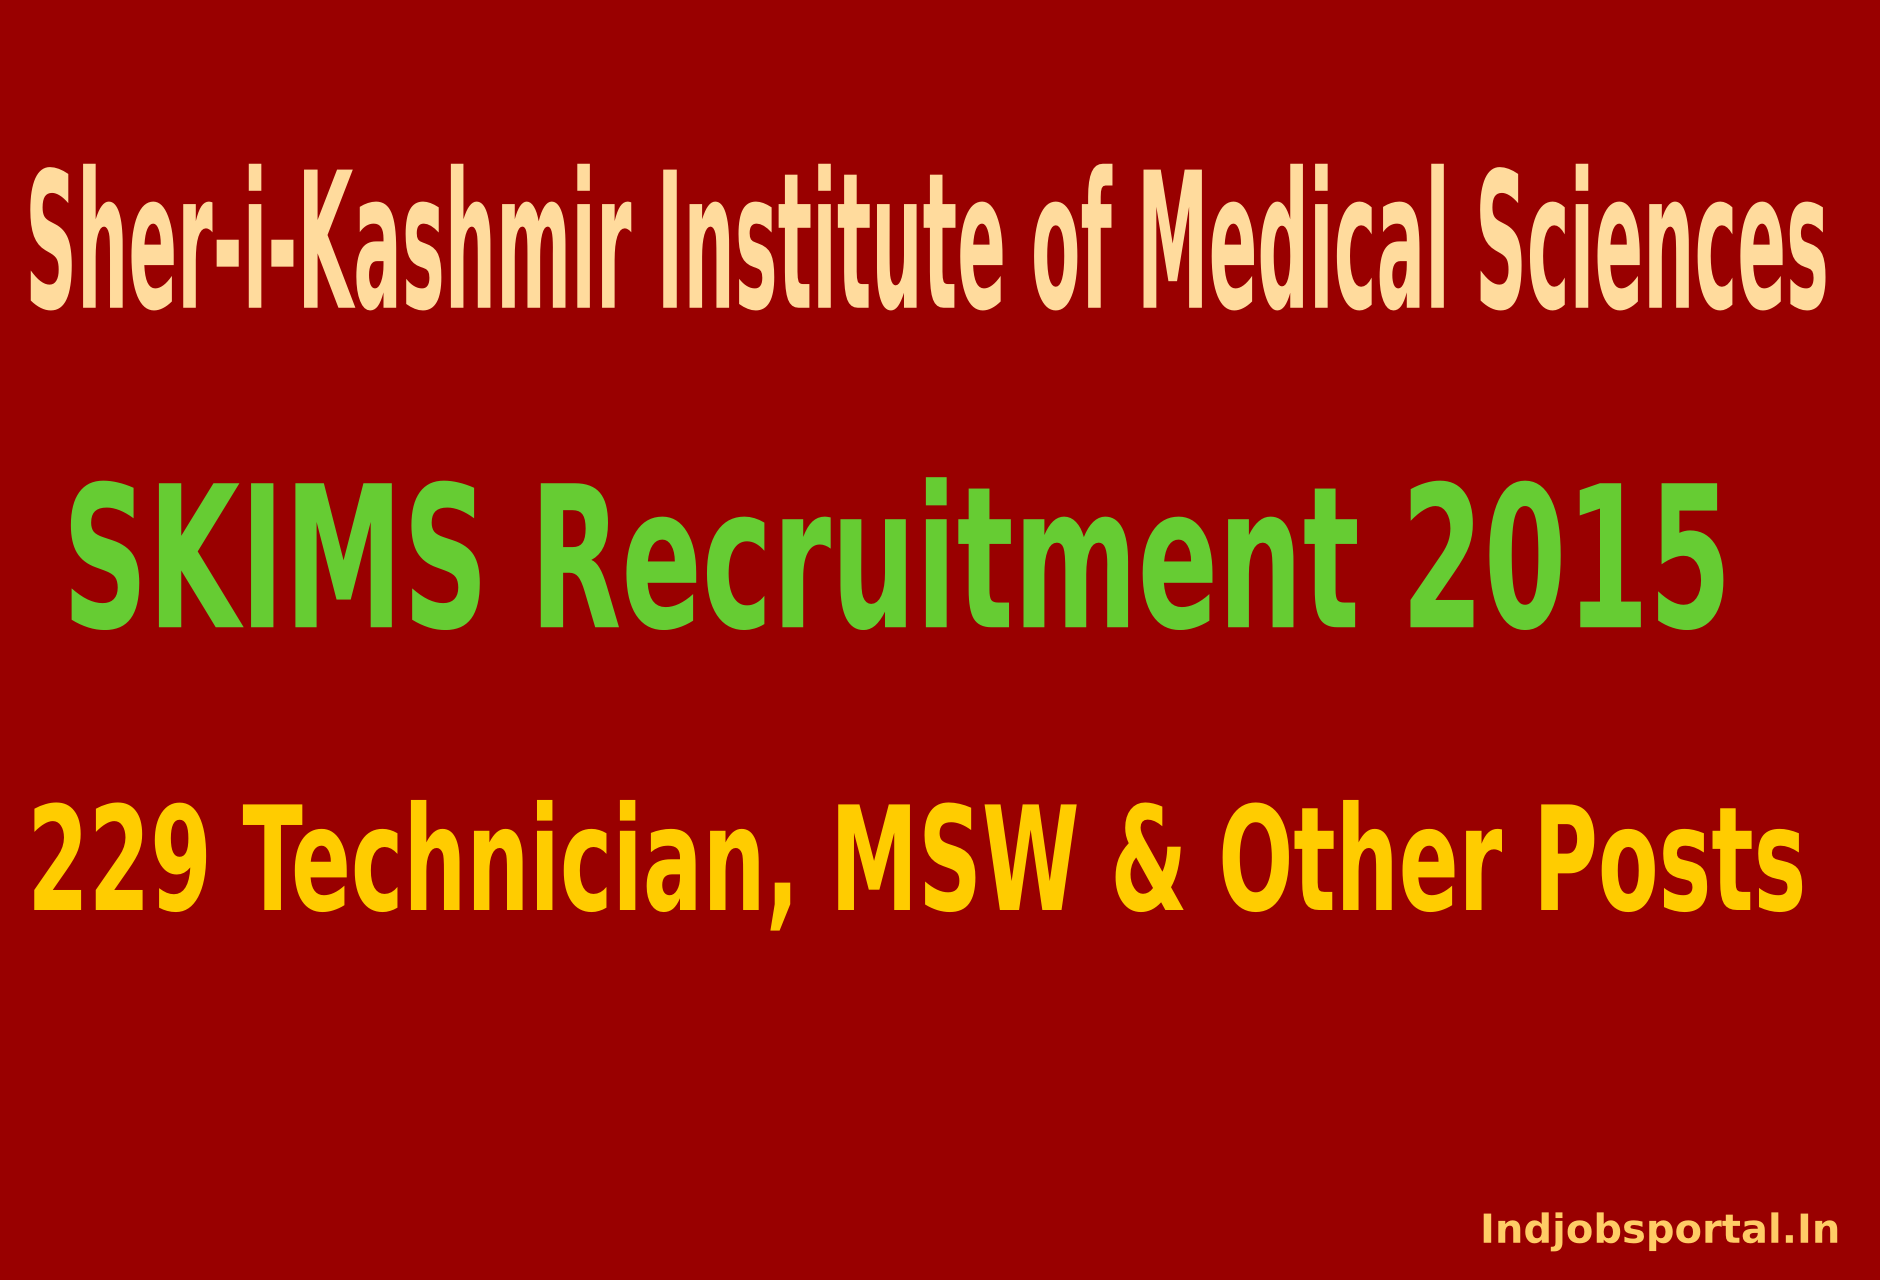 SKIMS Recruitment 2015 Apply Online For 229 Technician, MSW & Other Posts